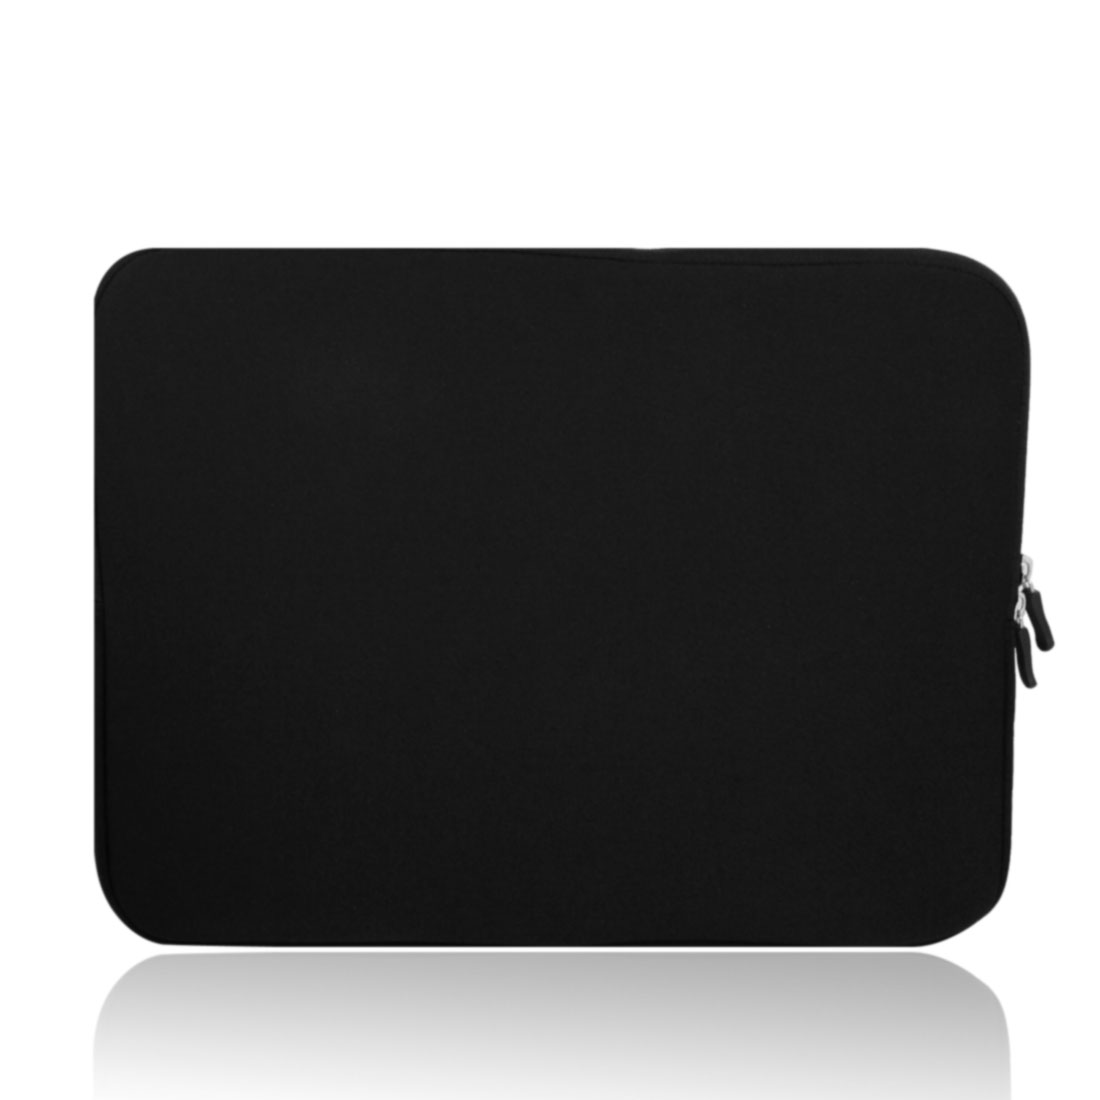 "15"" 15.4"" 15.6"" Black Neoprene Notebook Laptop Sleeve Bag Pouch for HP Pavilion"